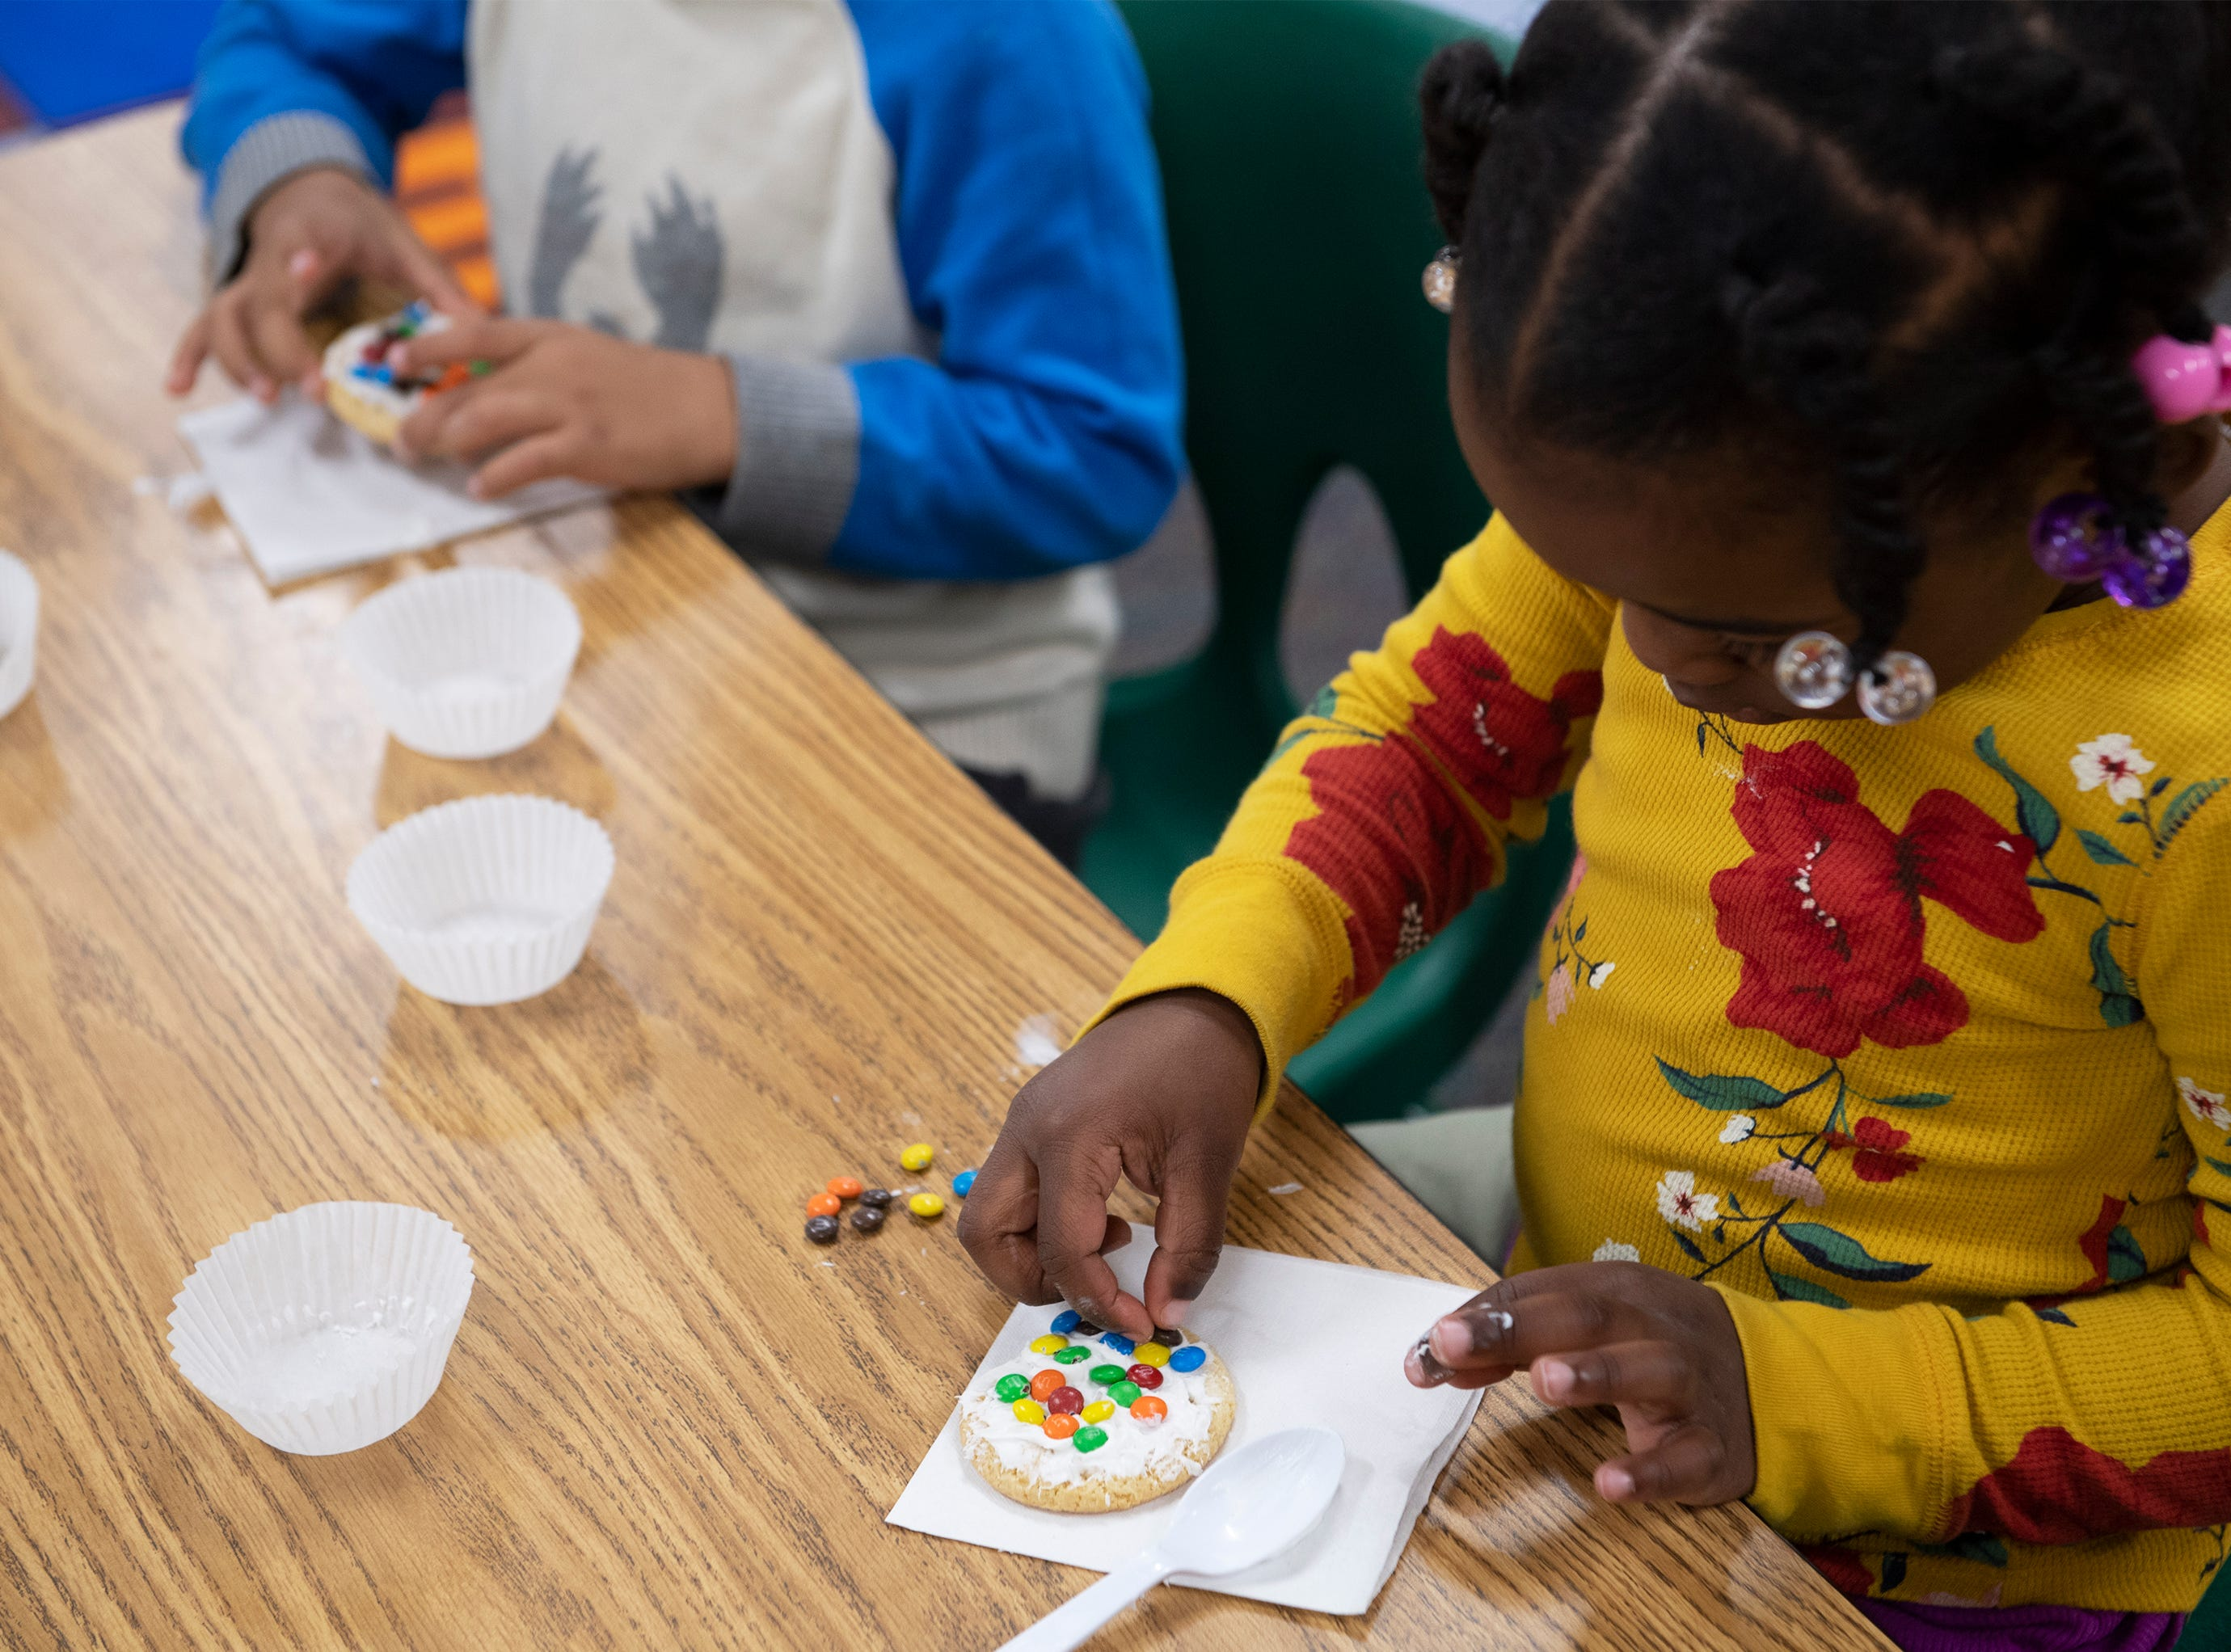 Janai Johnson, 4, decorates a cookie during an activity with Michelin volunteers at East North Street Academy Tuesday, Jan. 15, 2019.